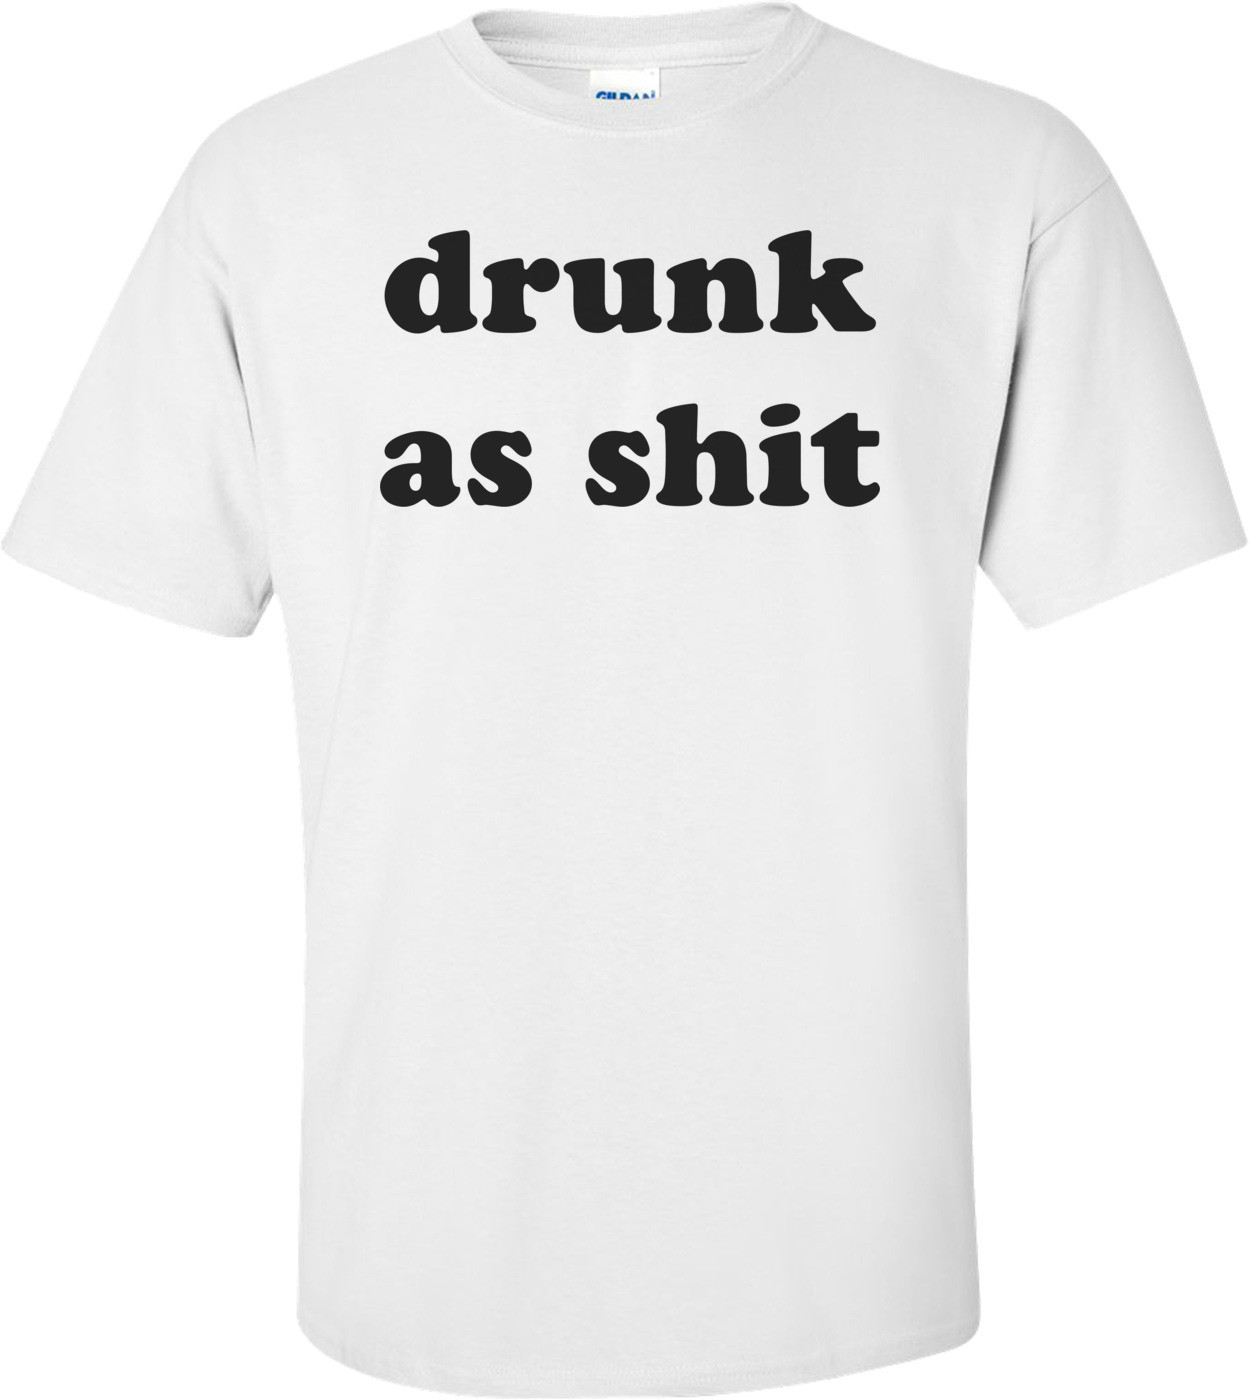 drunk as shit Shirt